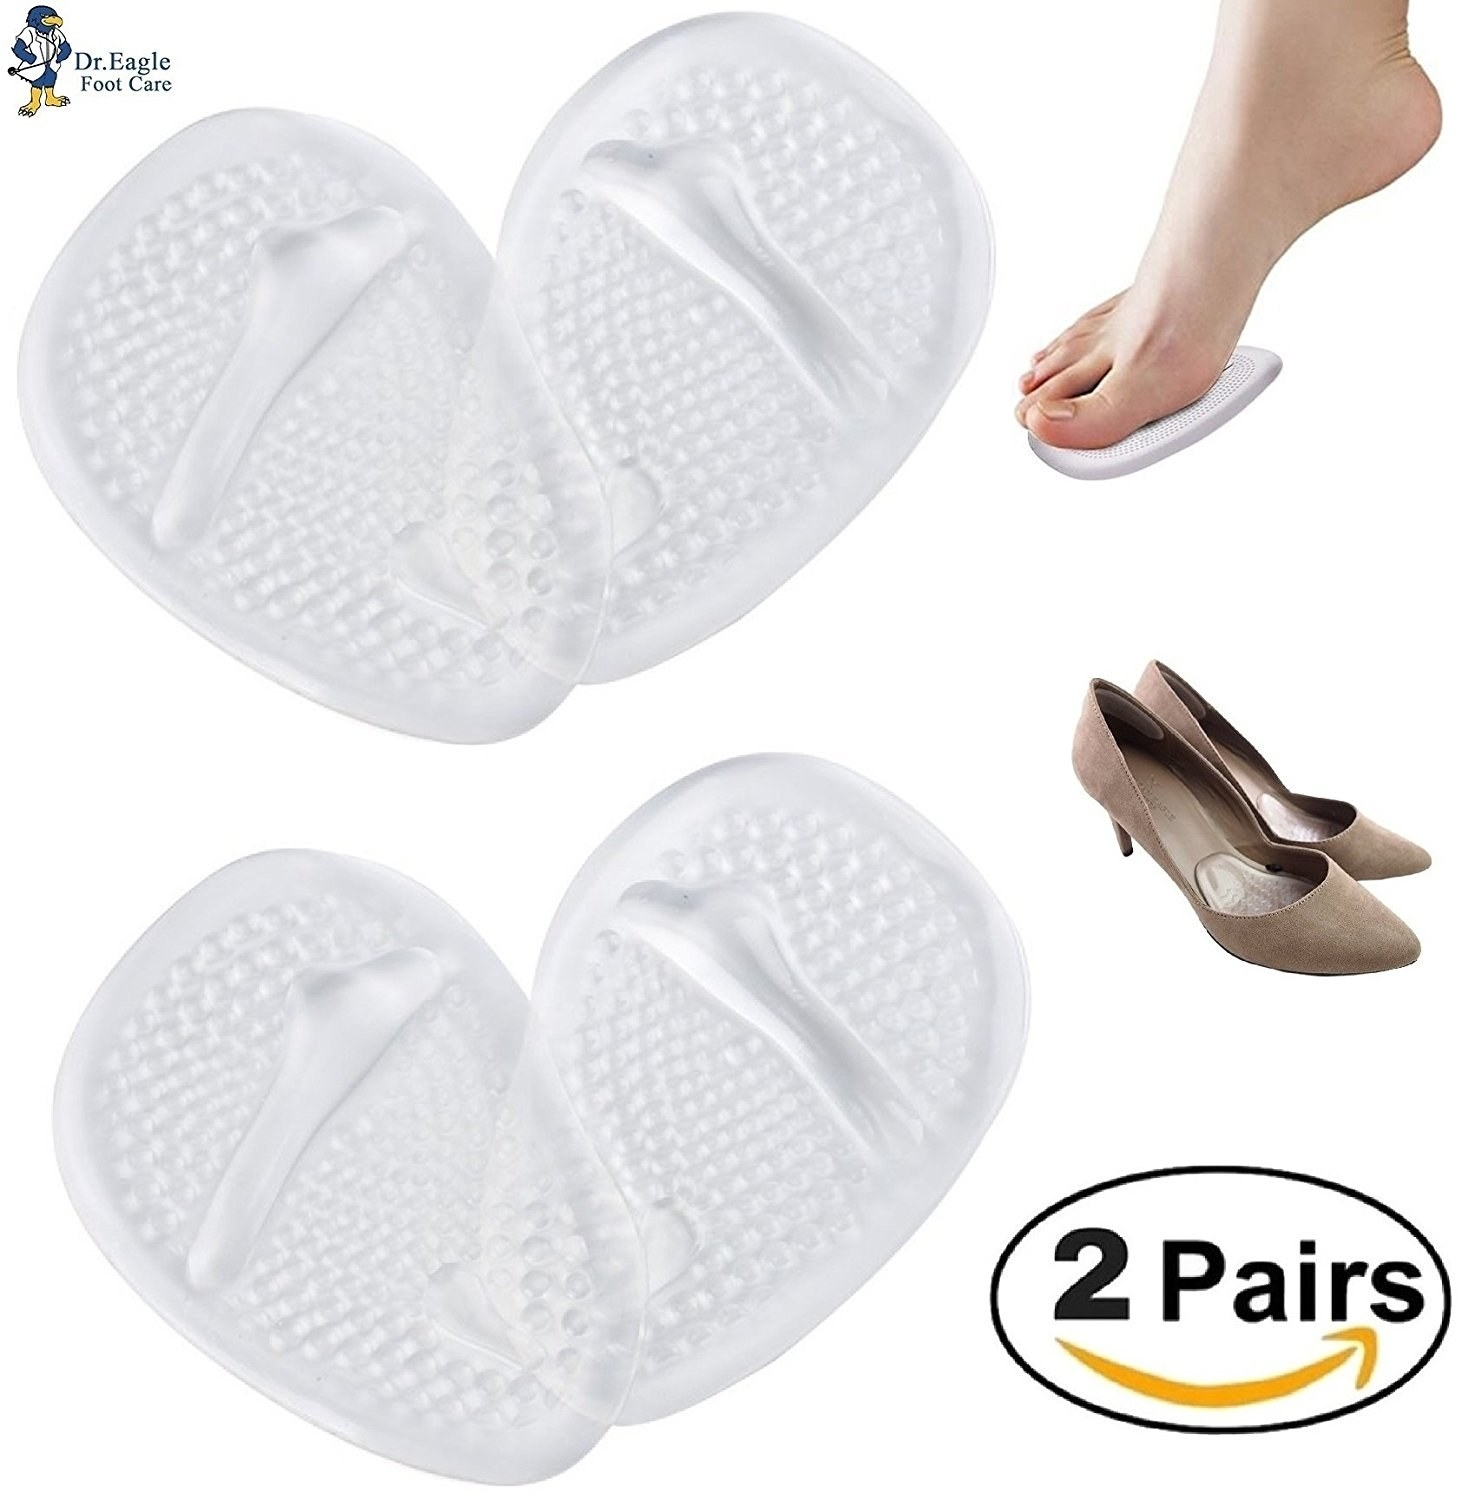 clear oval shaped shoe inserts